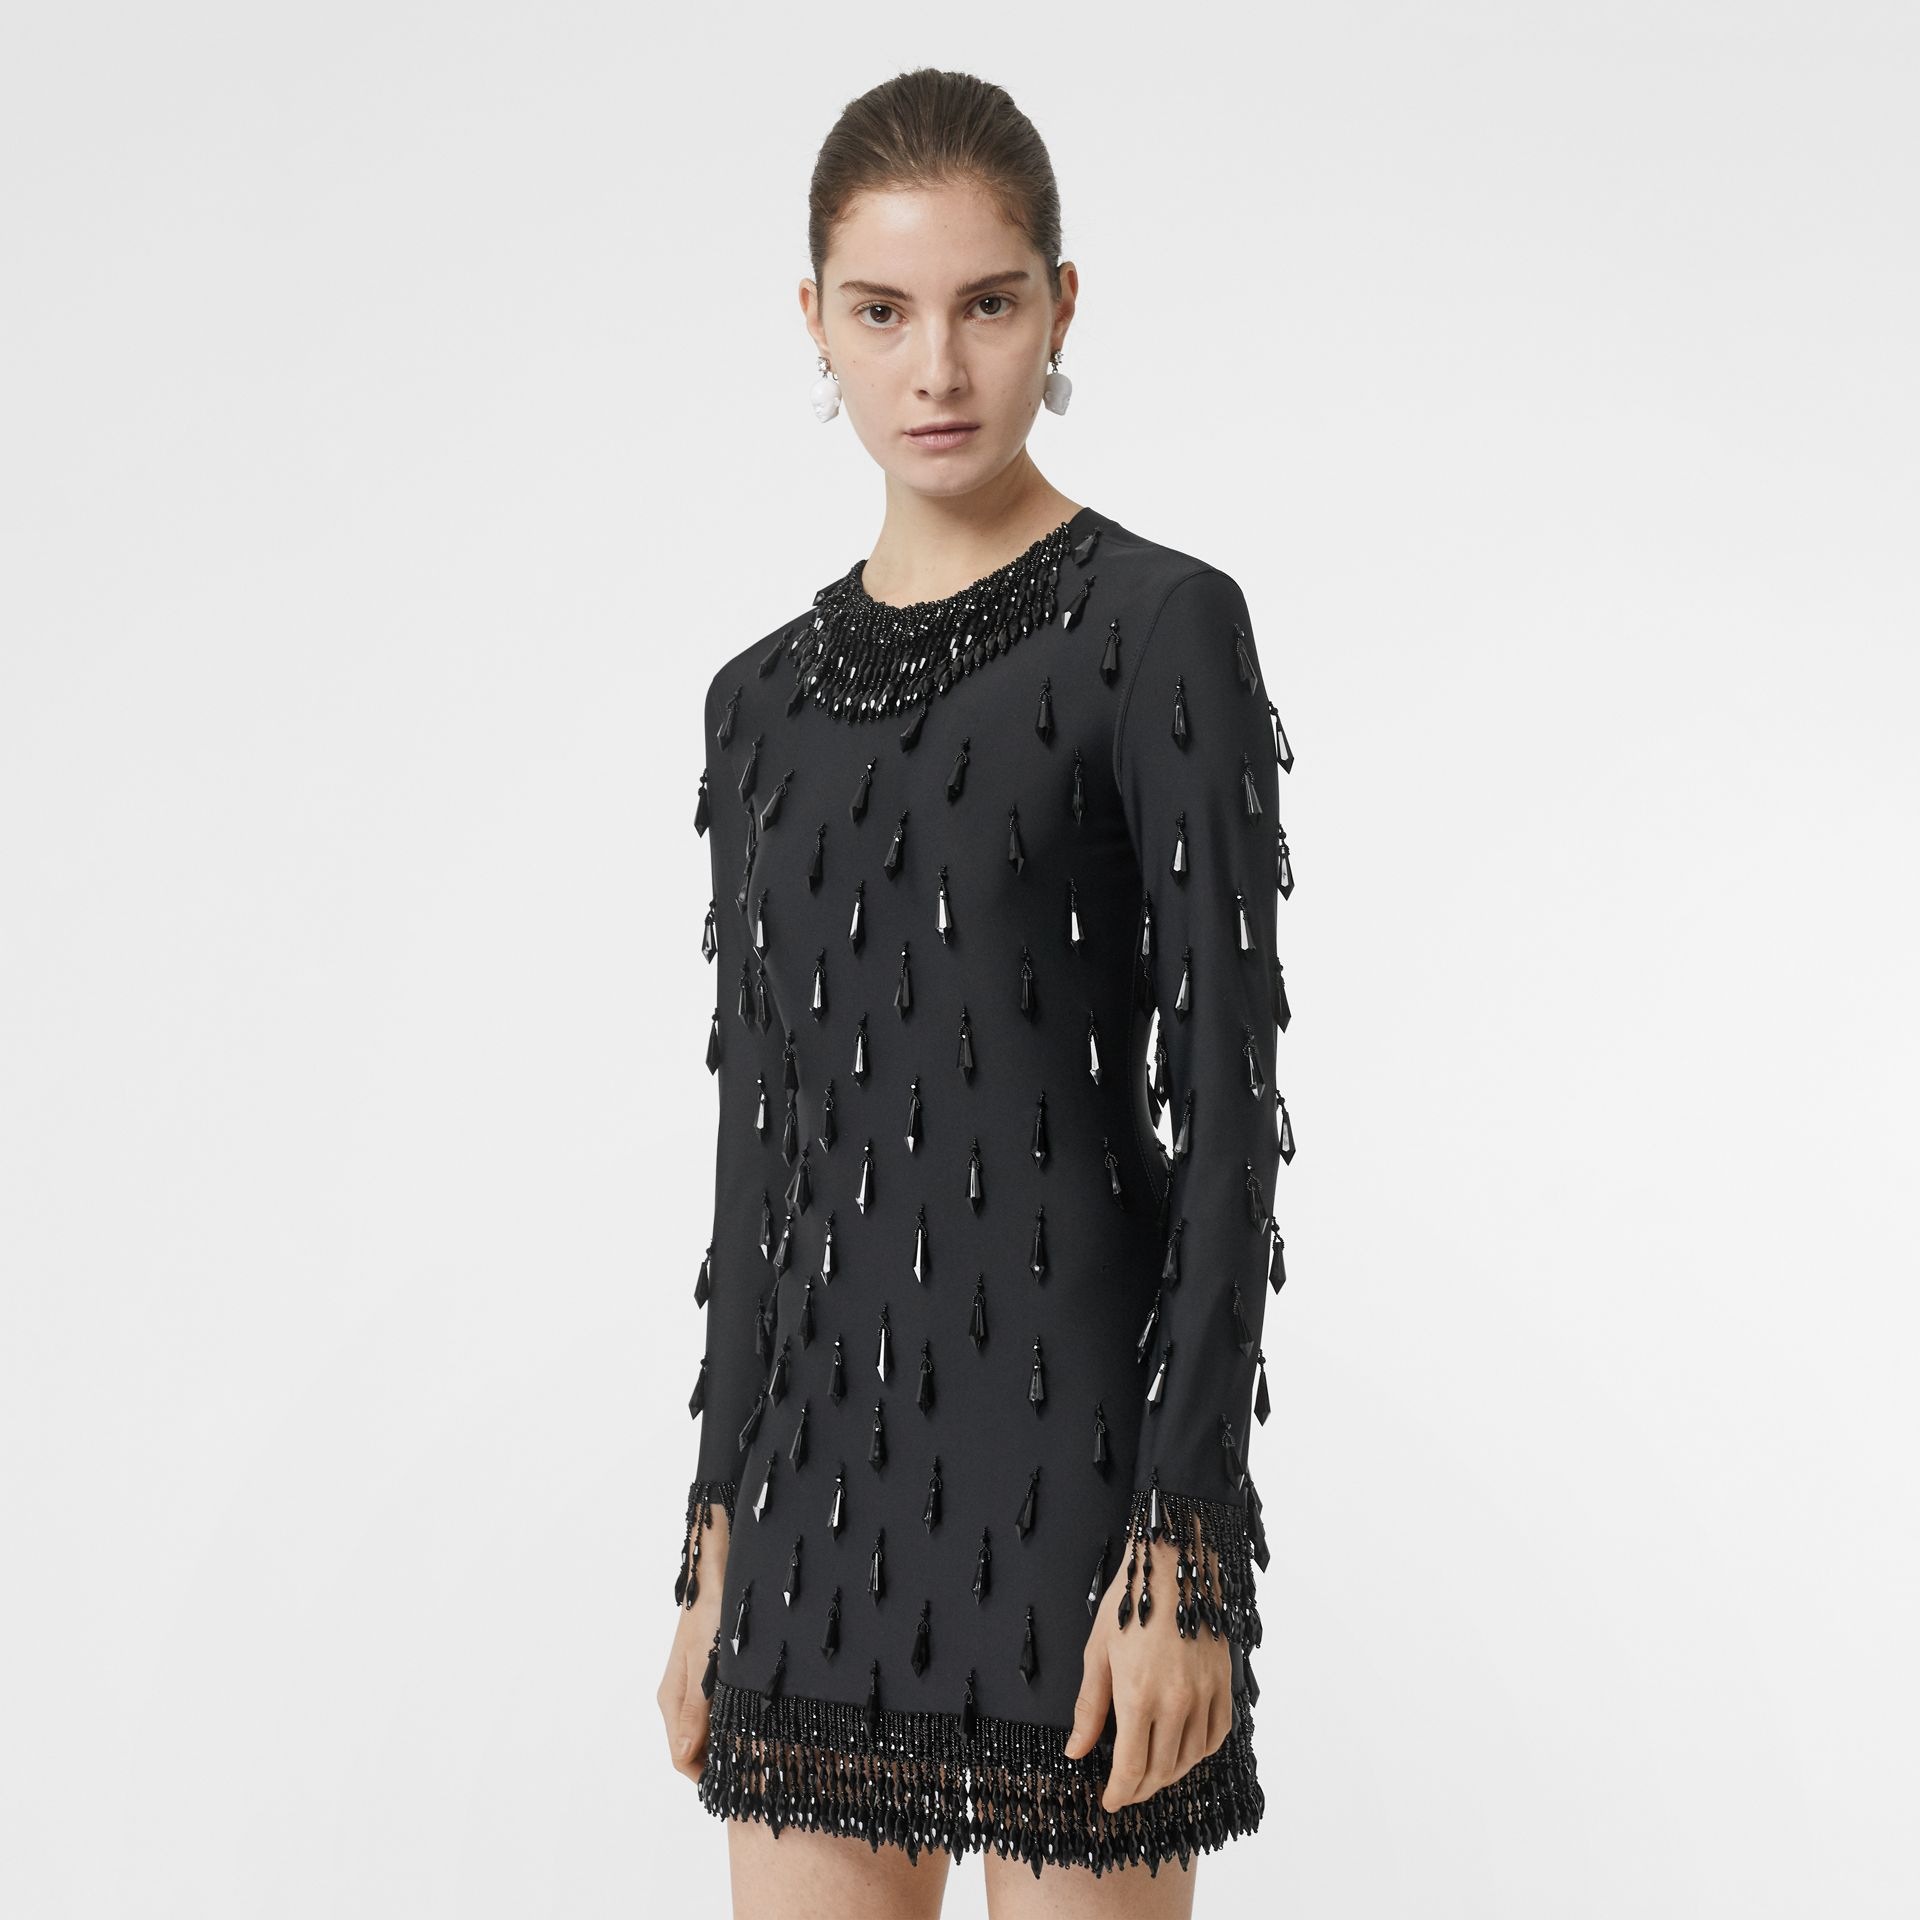 Long-sleeve Embellished Mini Dress in Black - Women | Burberry Hong Kong - gallery image 5